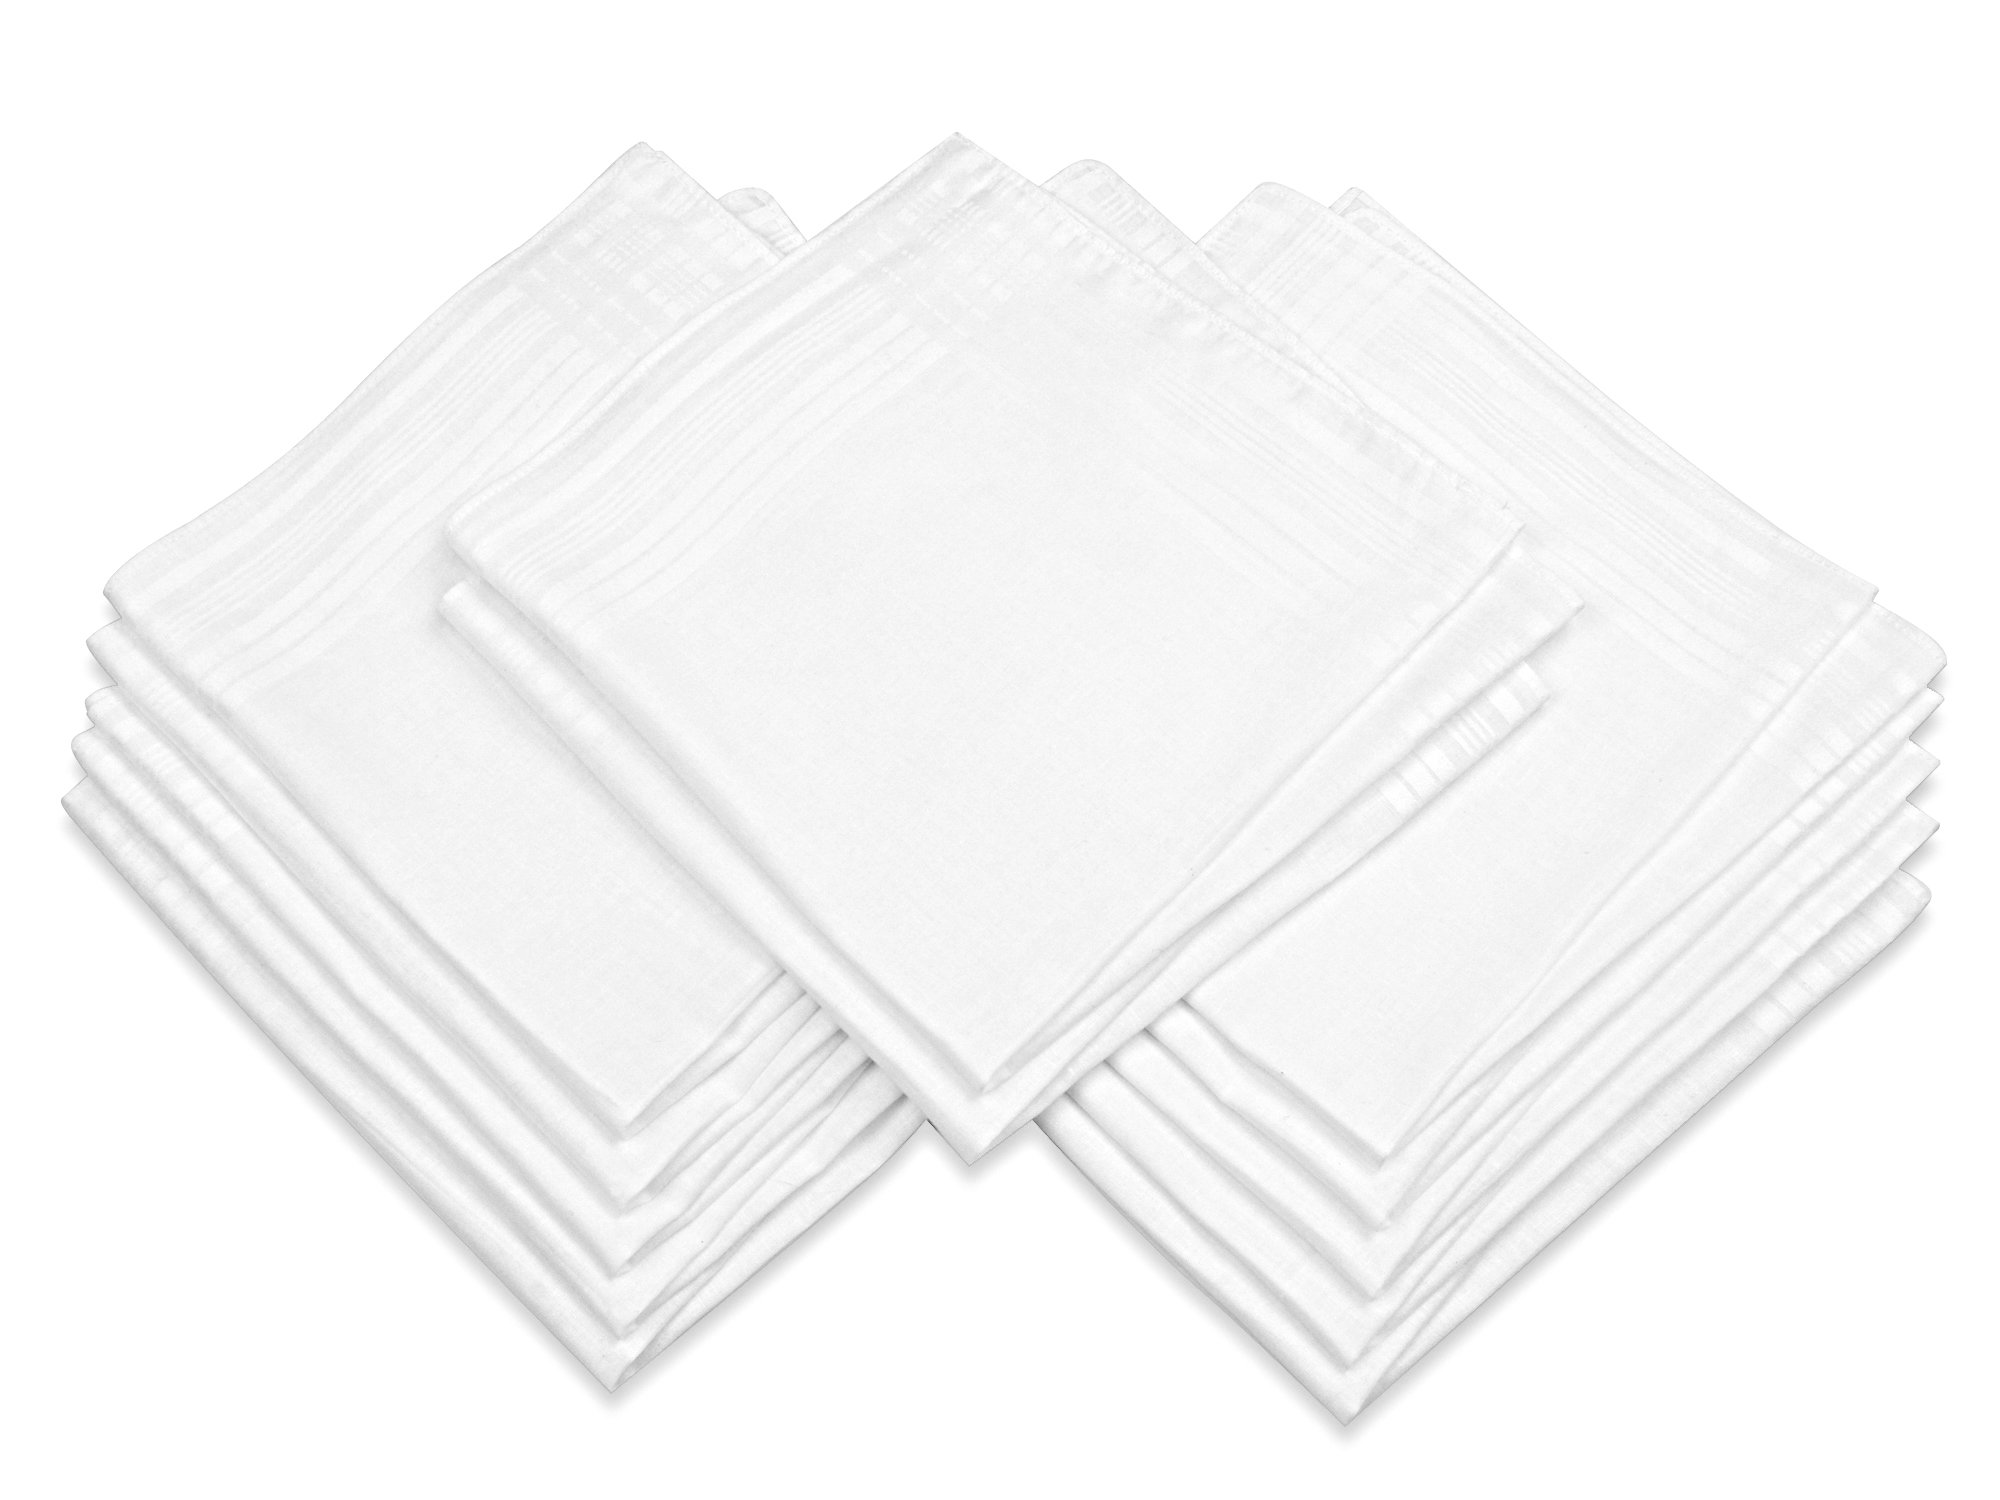 Milesky Men's Cotton Handkerchiefs Solid White Square 16 x 16'' - 12 Pack (MHW03)